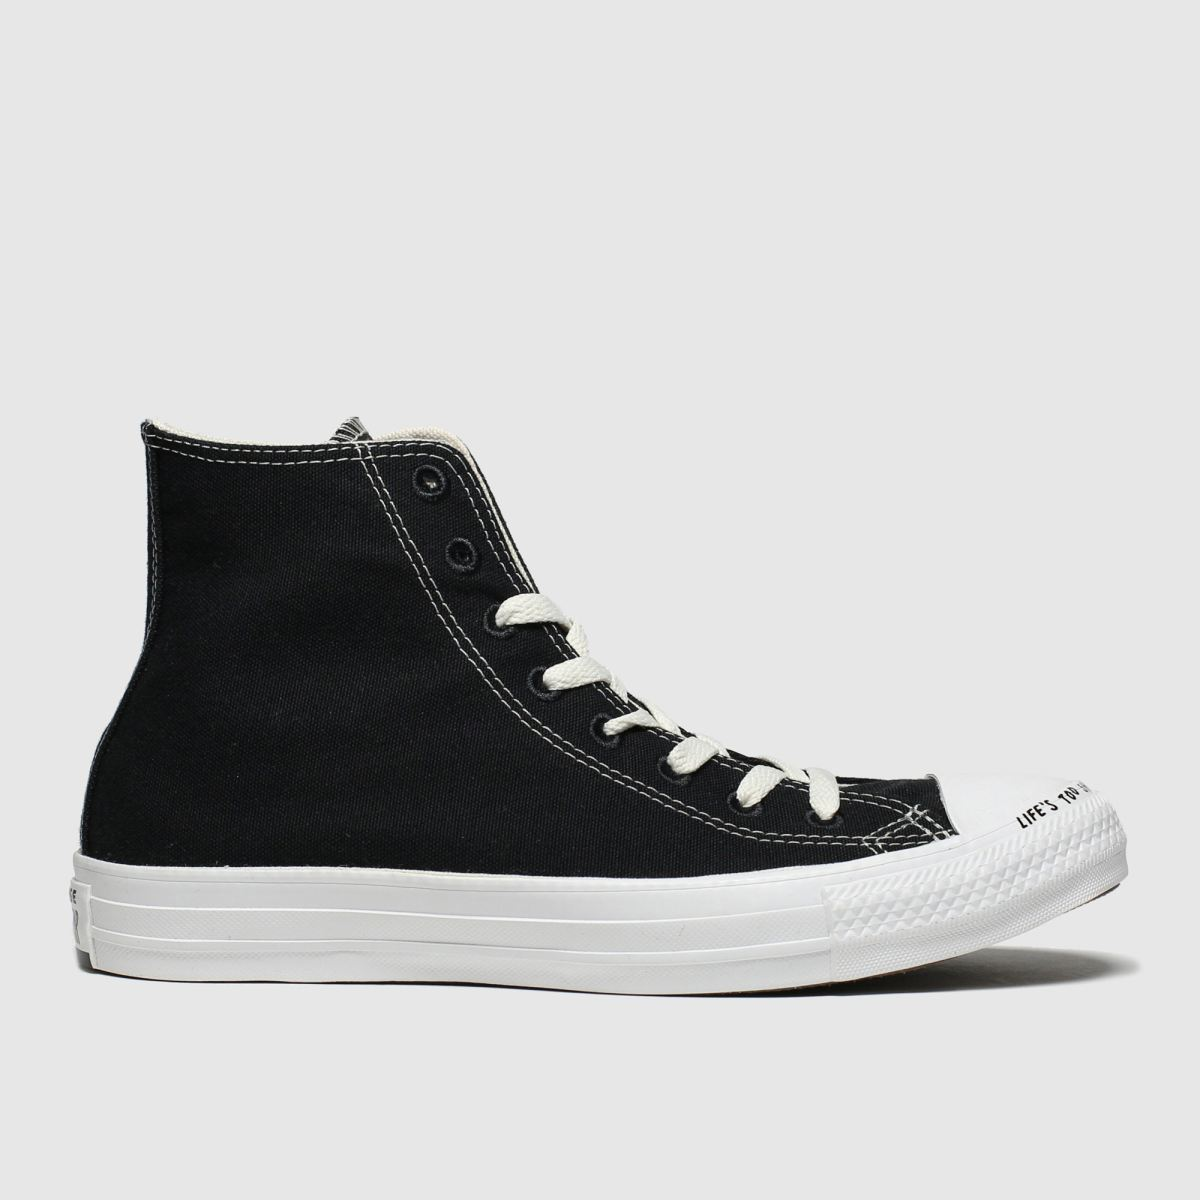 Converse Black & White Chuck Taylor All Star Renew Hi Trainers